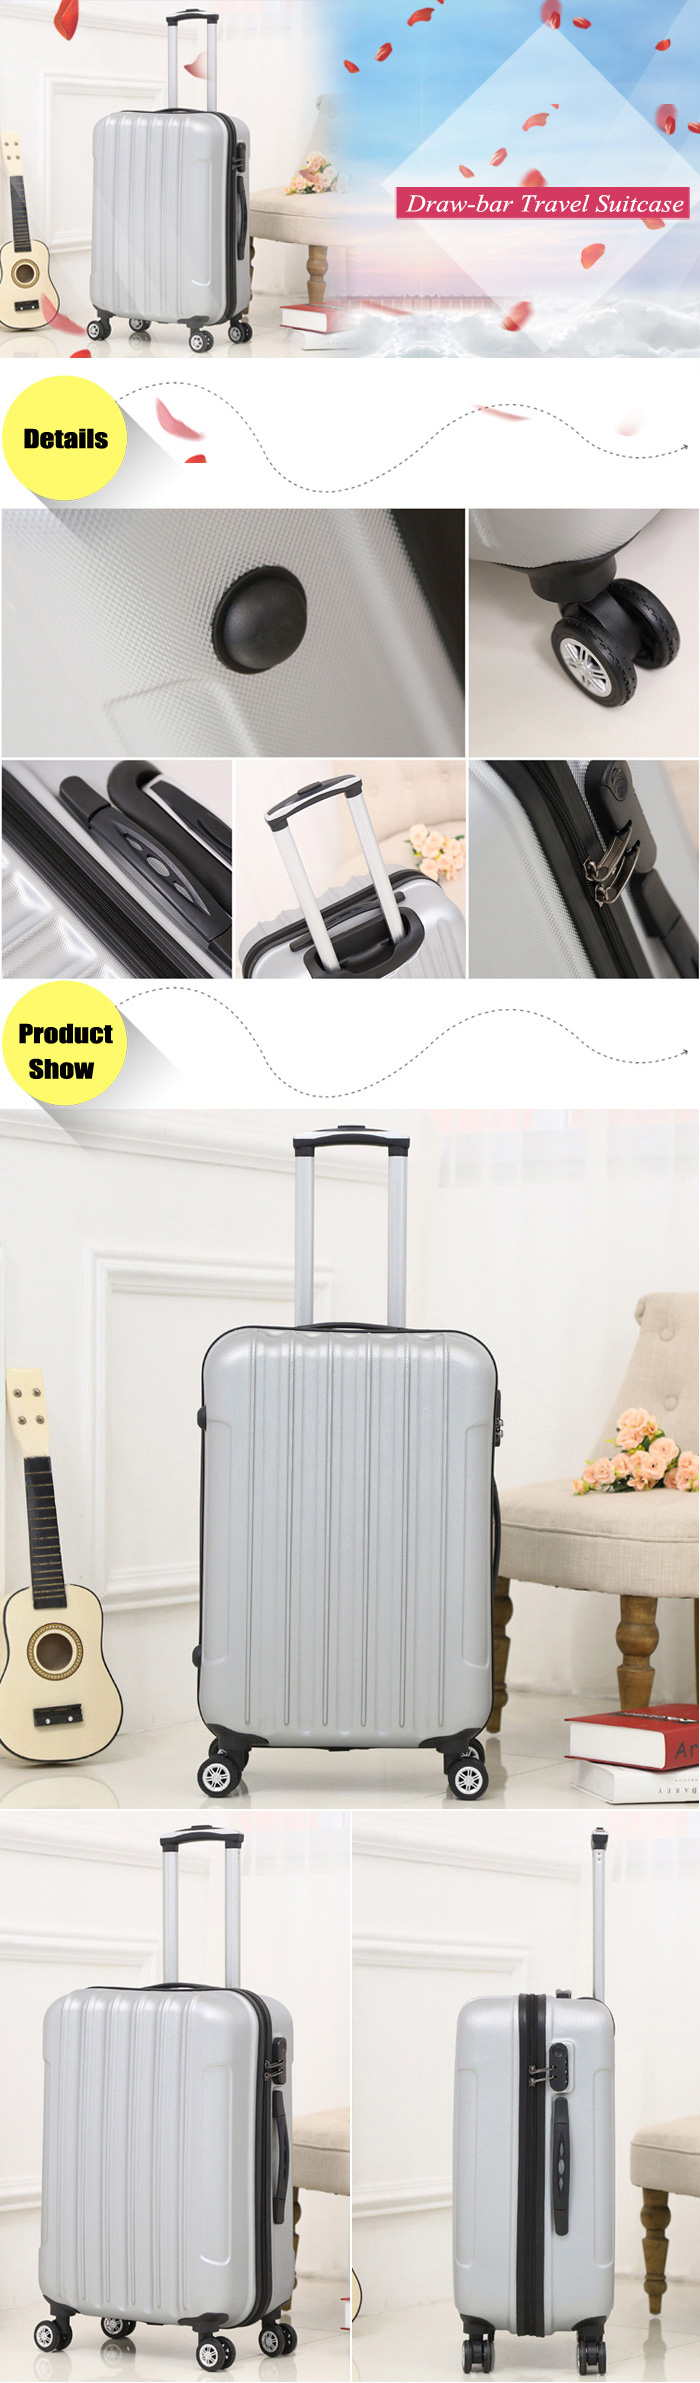 Aluminum Alloy Draw-bar 360 Degree Spinner Wheel Luggage Travel Suitcase with Code Lock